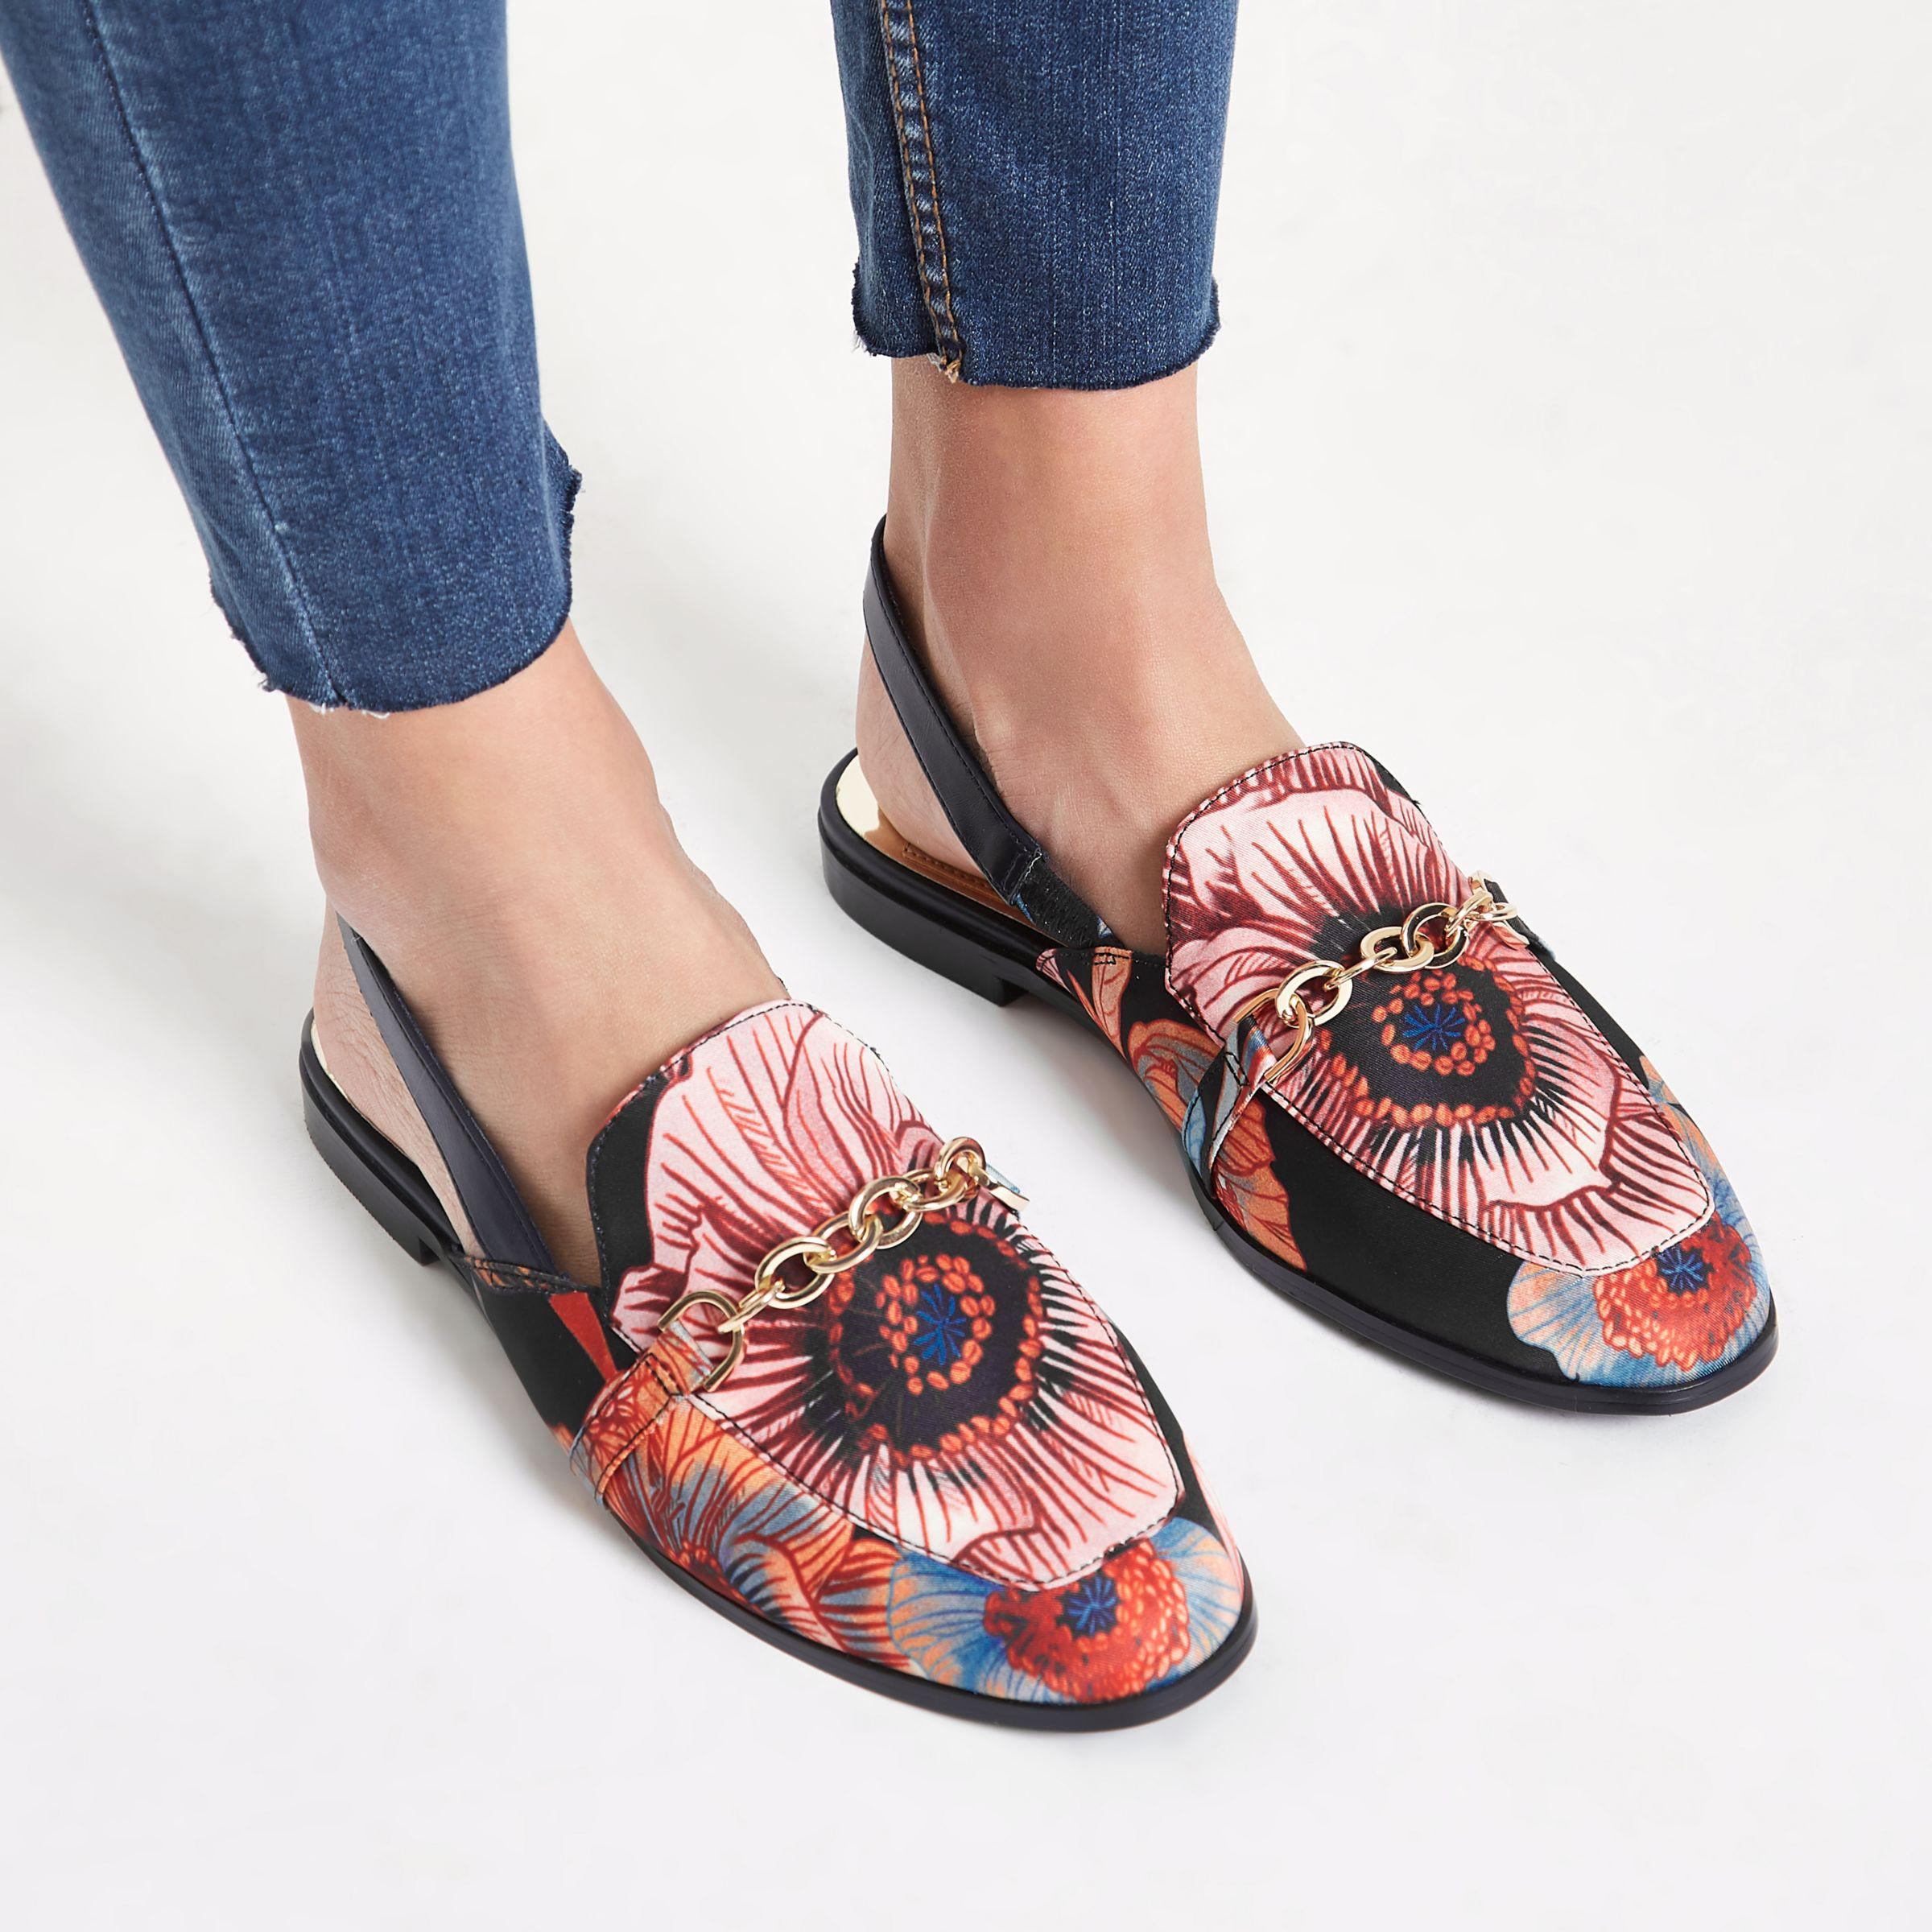 Lyst River Island Black Floral Chain Backless Loafer In D Shoes Slip On Mocasine Casual Loafers Gallery